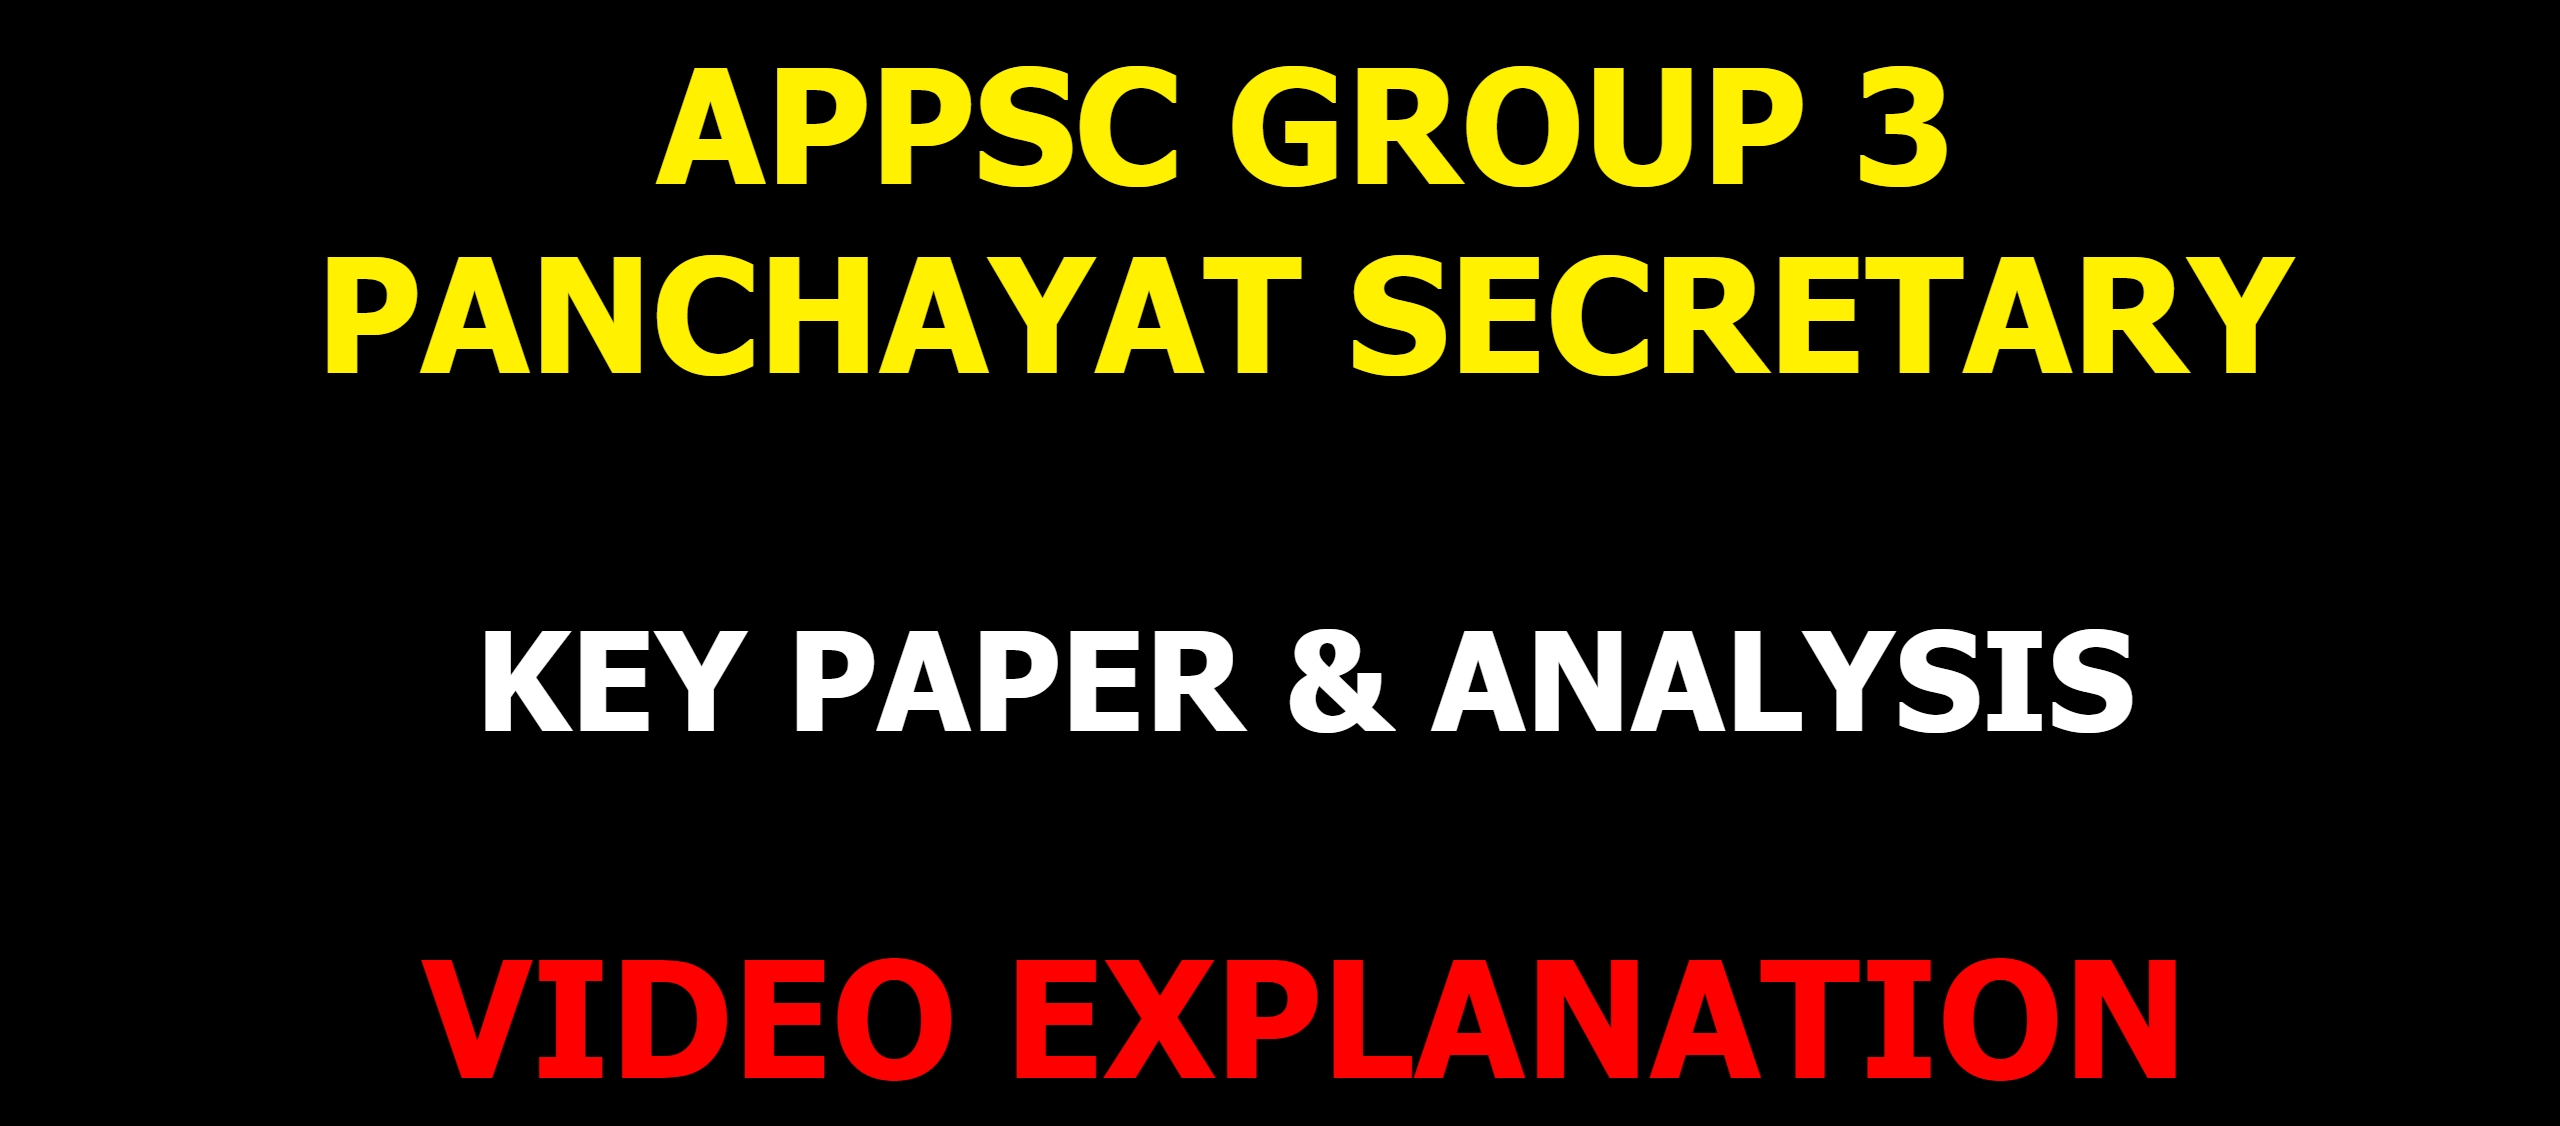 appsc group 3 panchayat secretary exam 2019 key paper video explanation